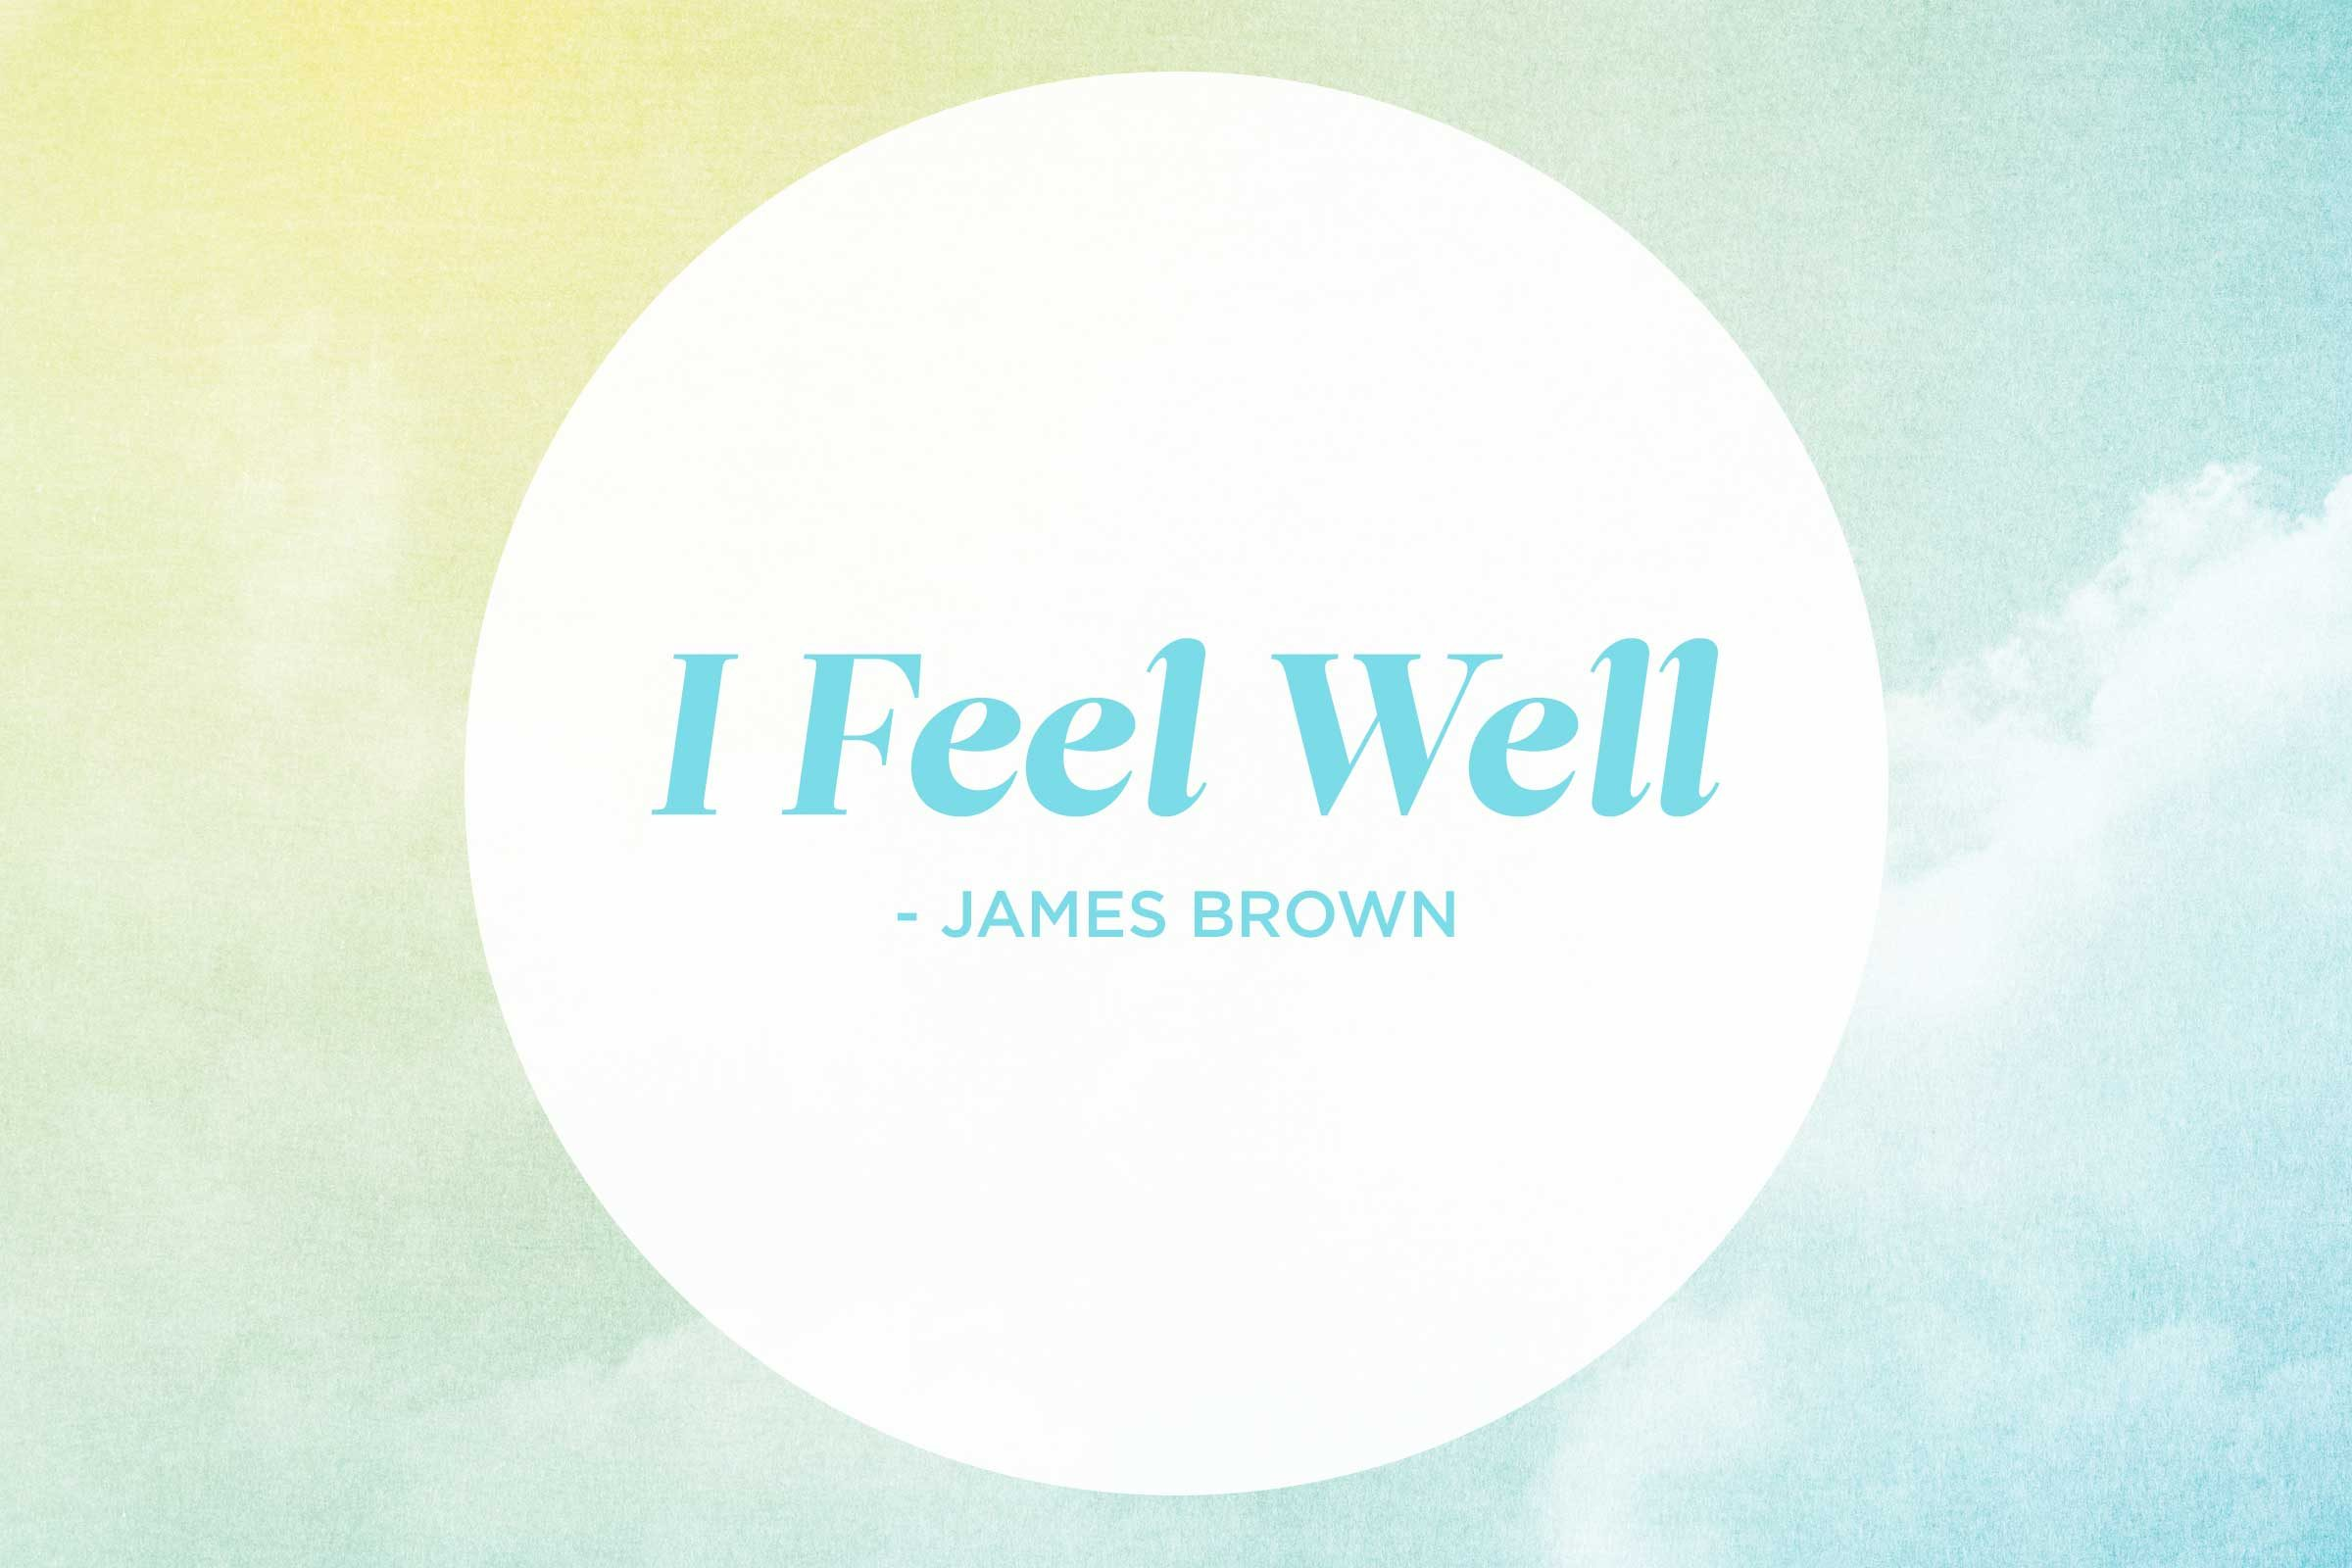 'I Feel Good' by James Brown